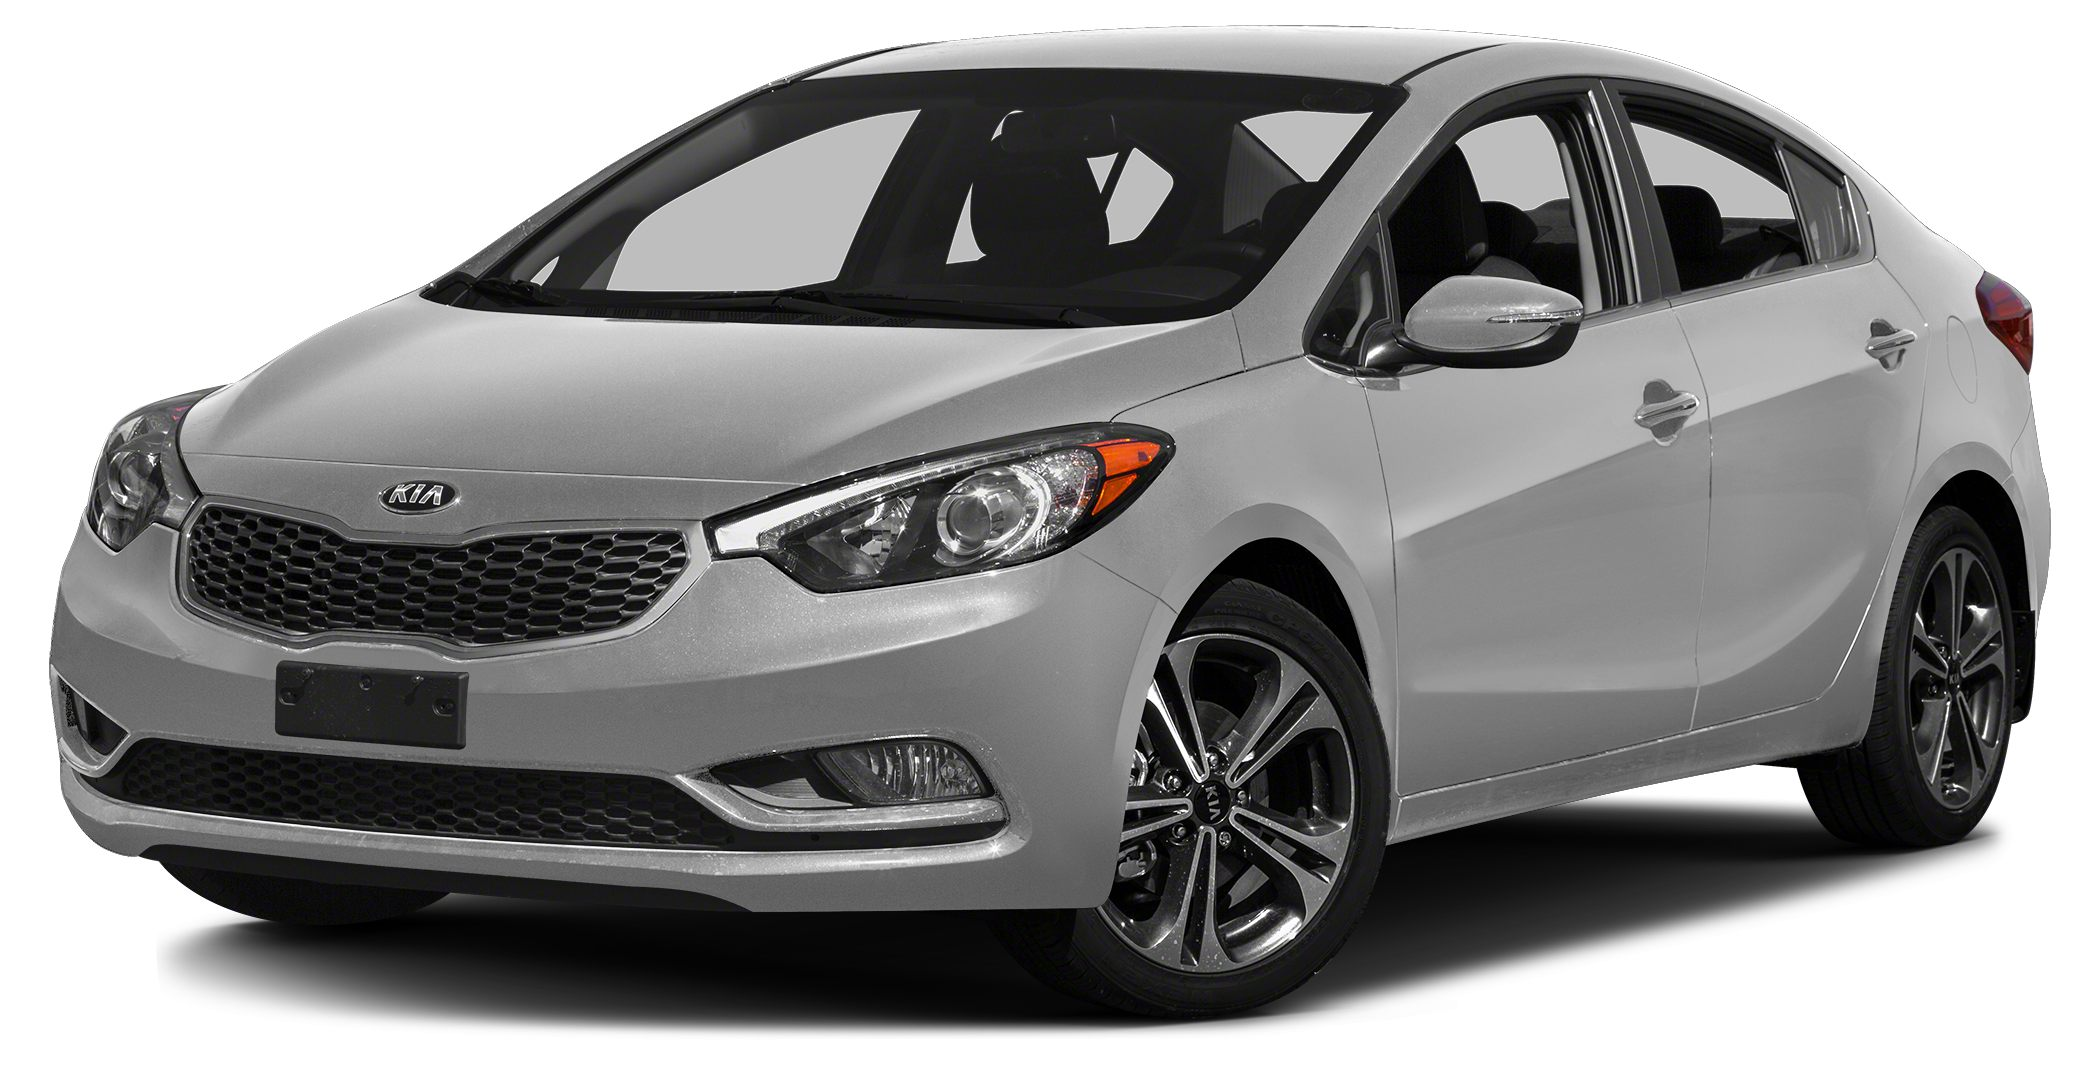 2014 Kia Forte LX One of the best things about this 2014 Kia Forte LX is something you cant see